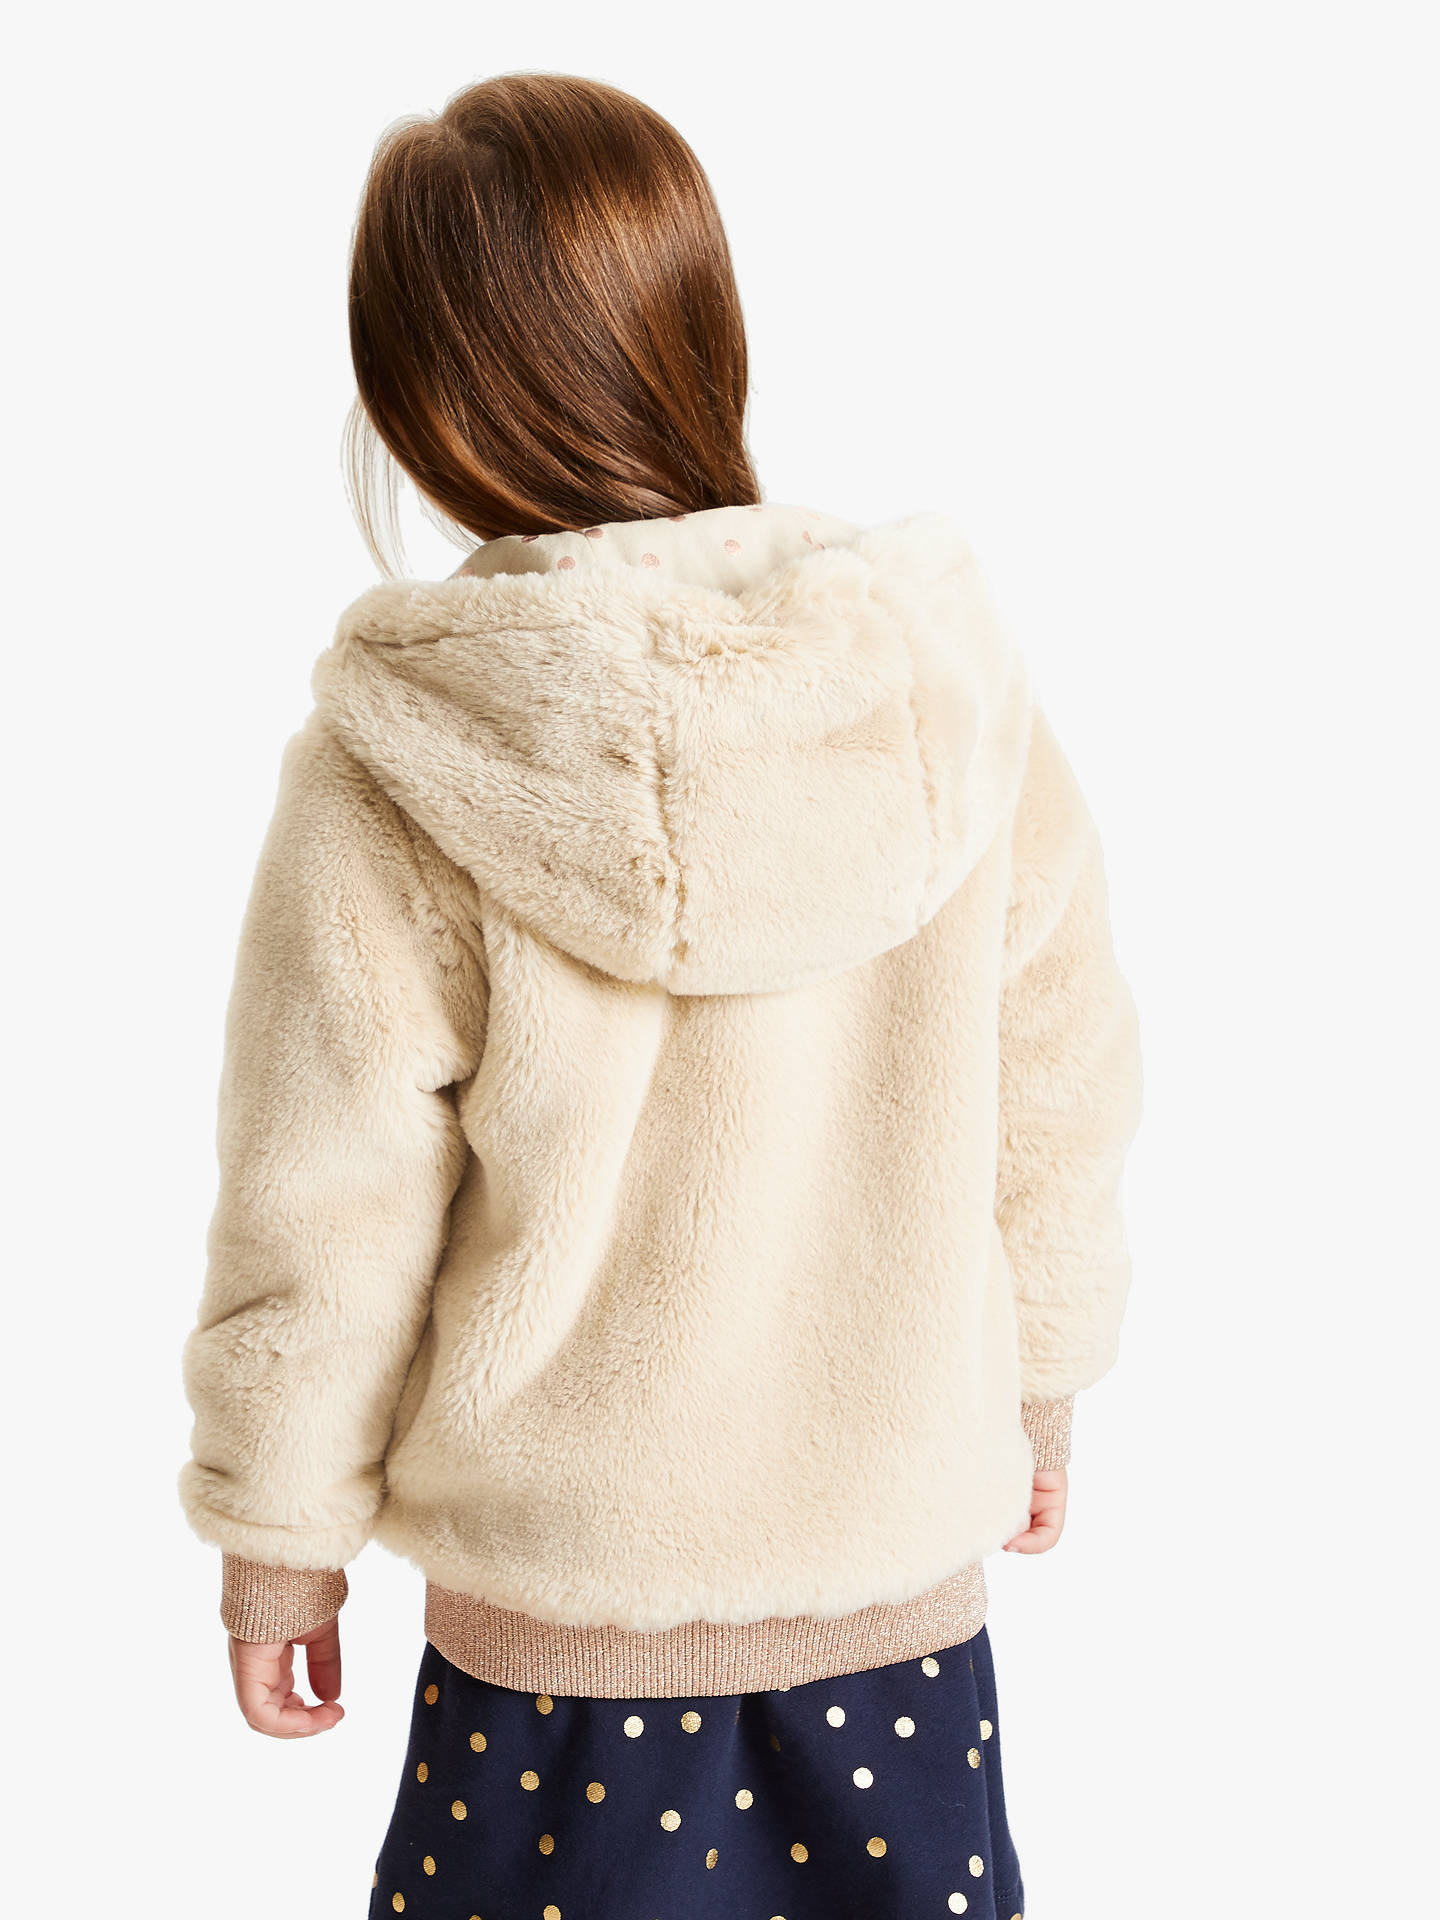 Buy John Lewis & Partners Girls' Faux Fur Bomber Jacket, Toffee, 2 years Online at johnlewis.com